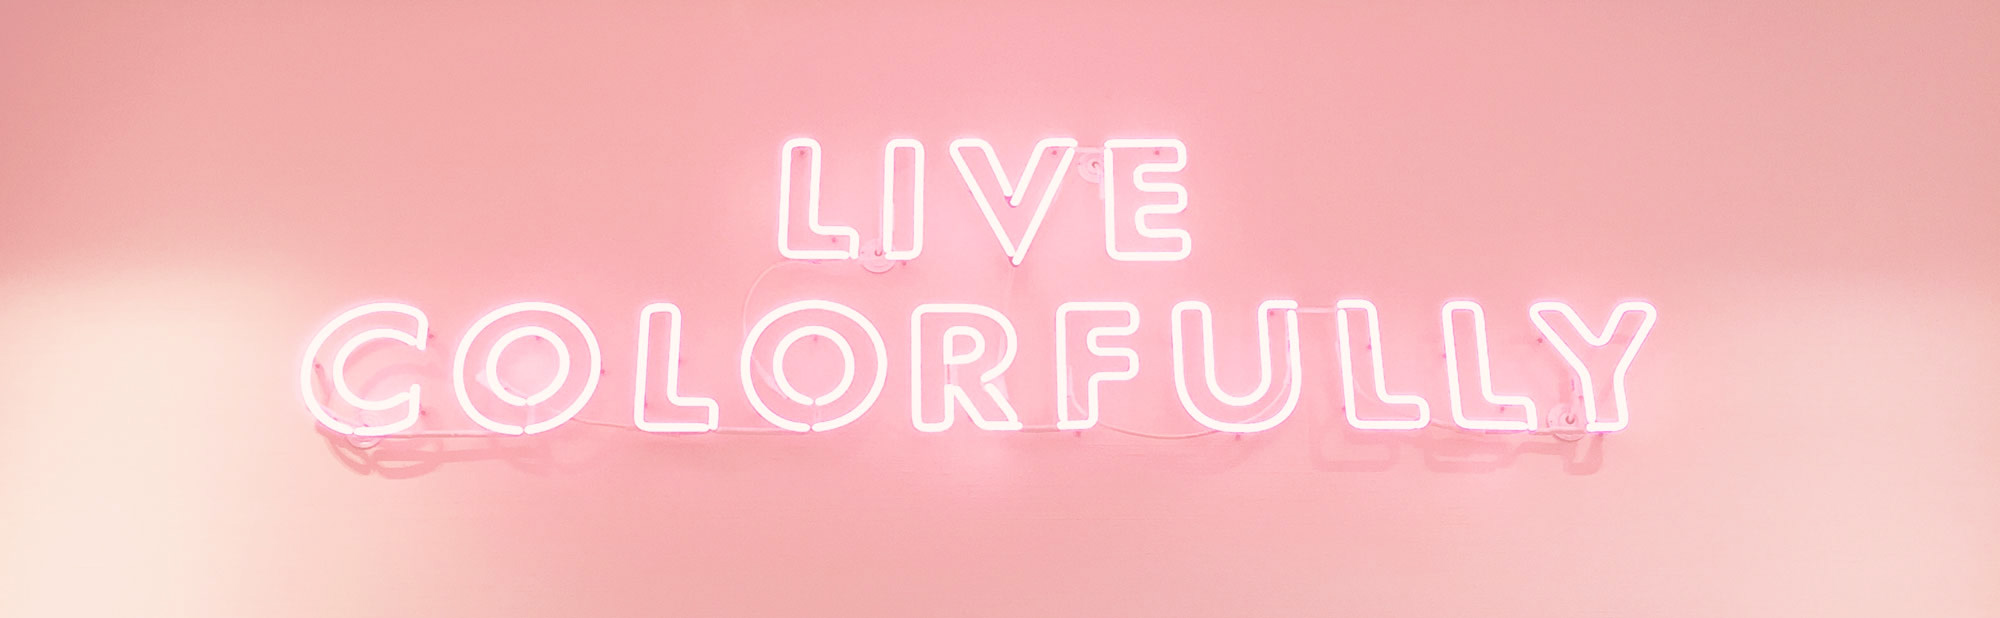 live-colorfully-2.jpg